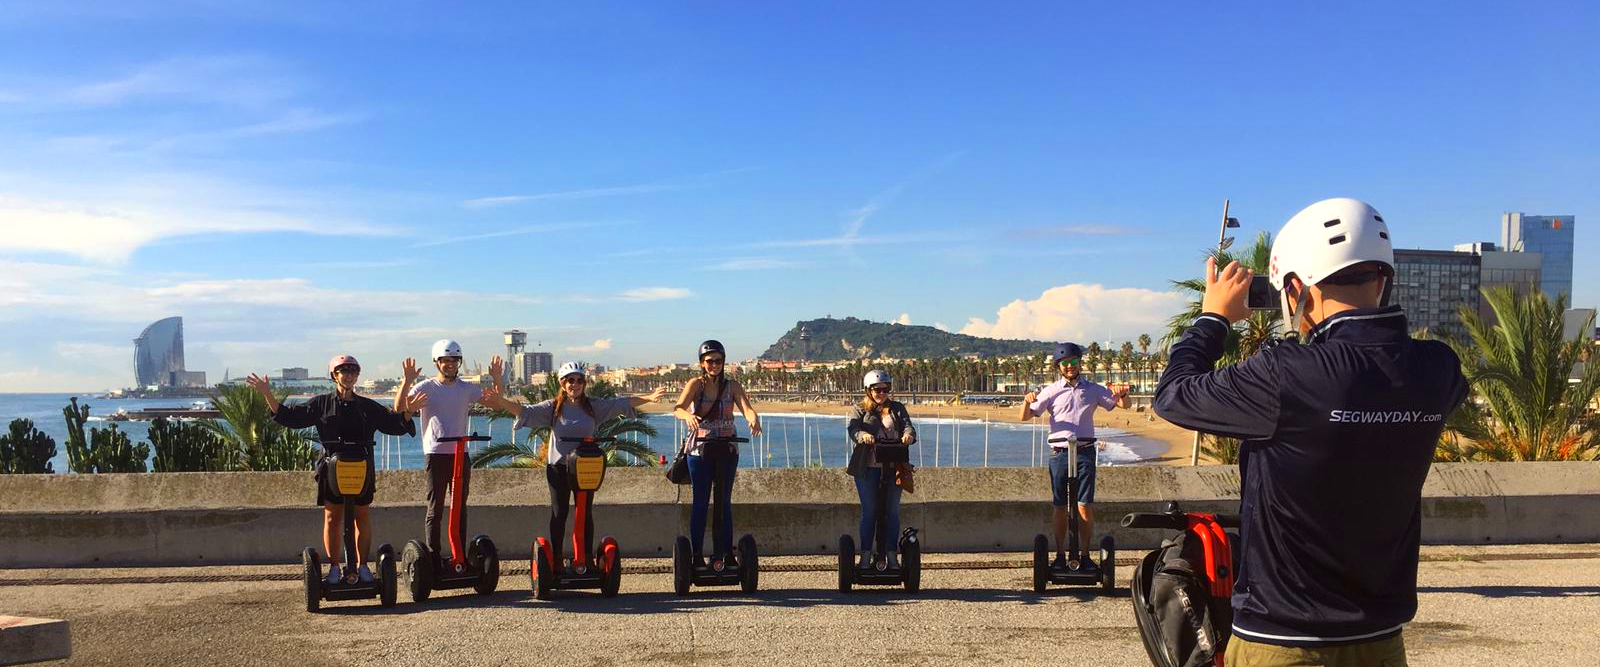 Photo: Segwayday